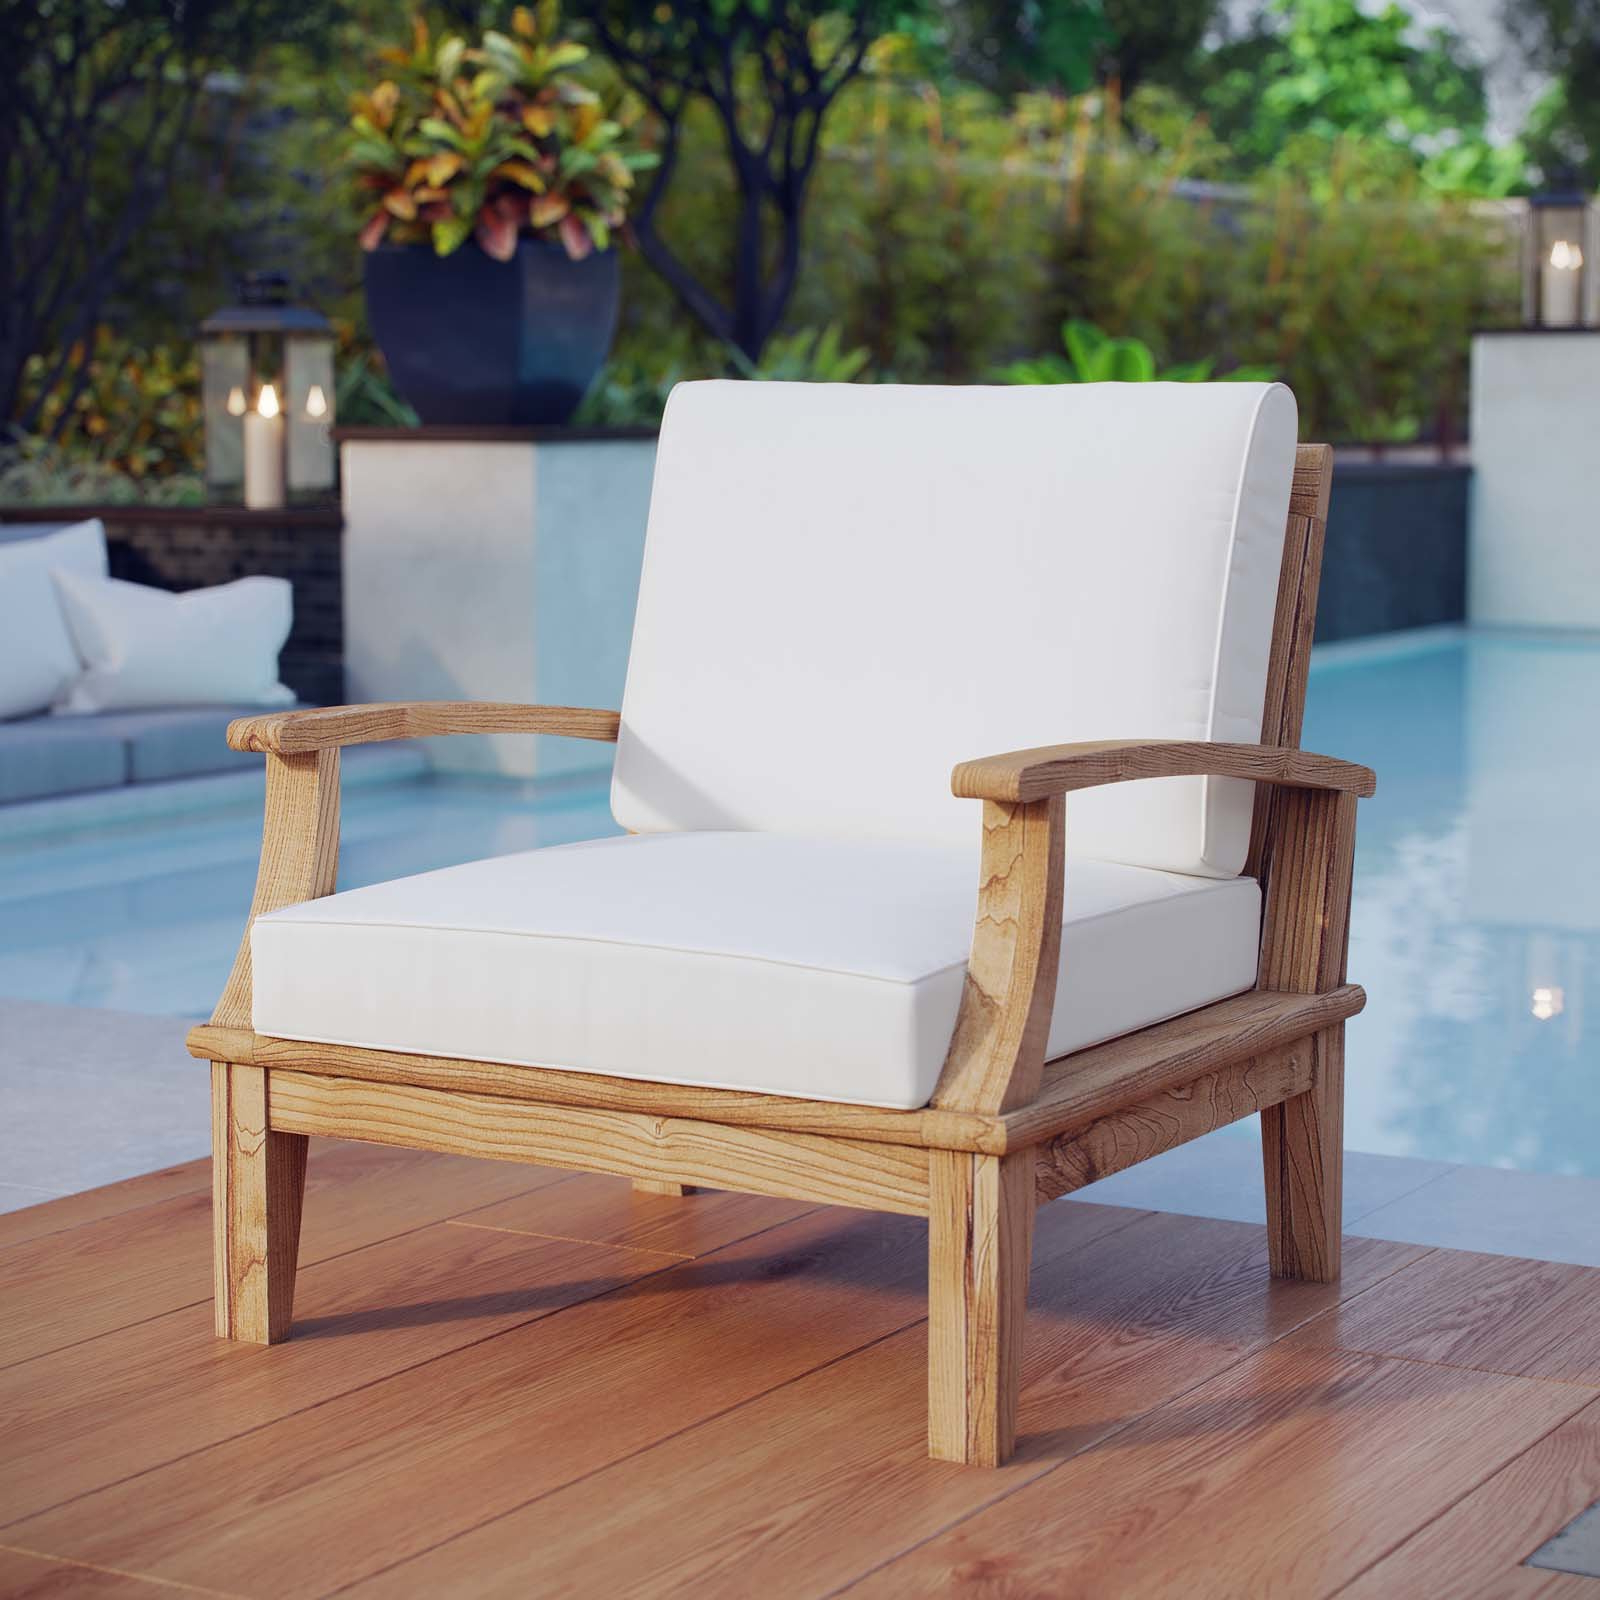 Elaina Teak Patio Chair With Cushions With Best And Newest Summerton Teak Patio Sofas With Cushions (View 5 of 20)